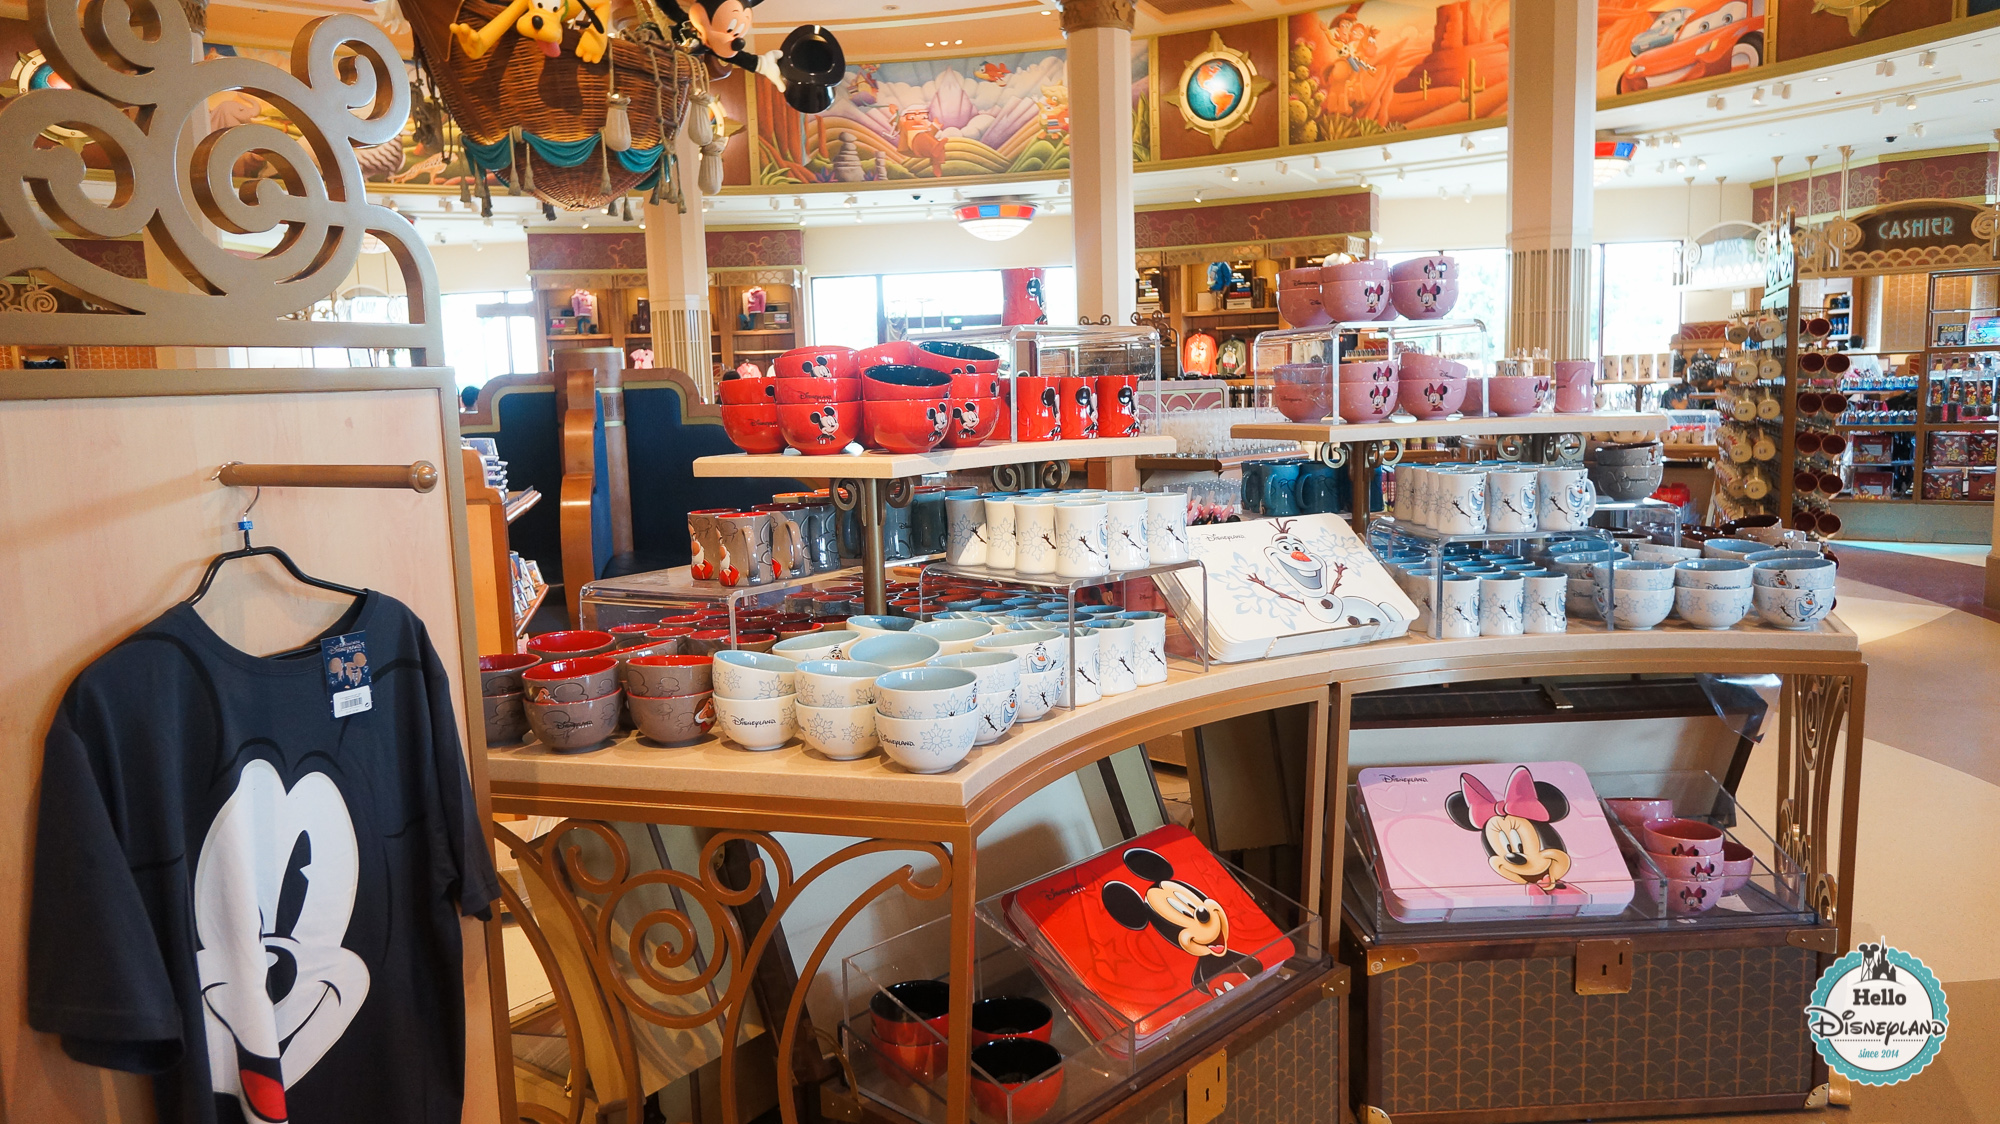 Hello disneyland le blog n 1 sur disneyland paris world of disney boutique disney village - Boutique cuisine paris ...